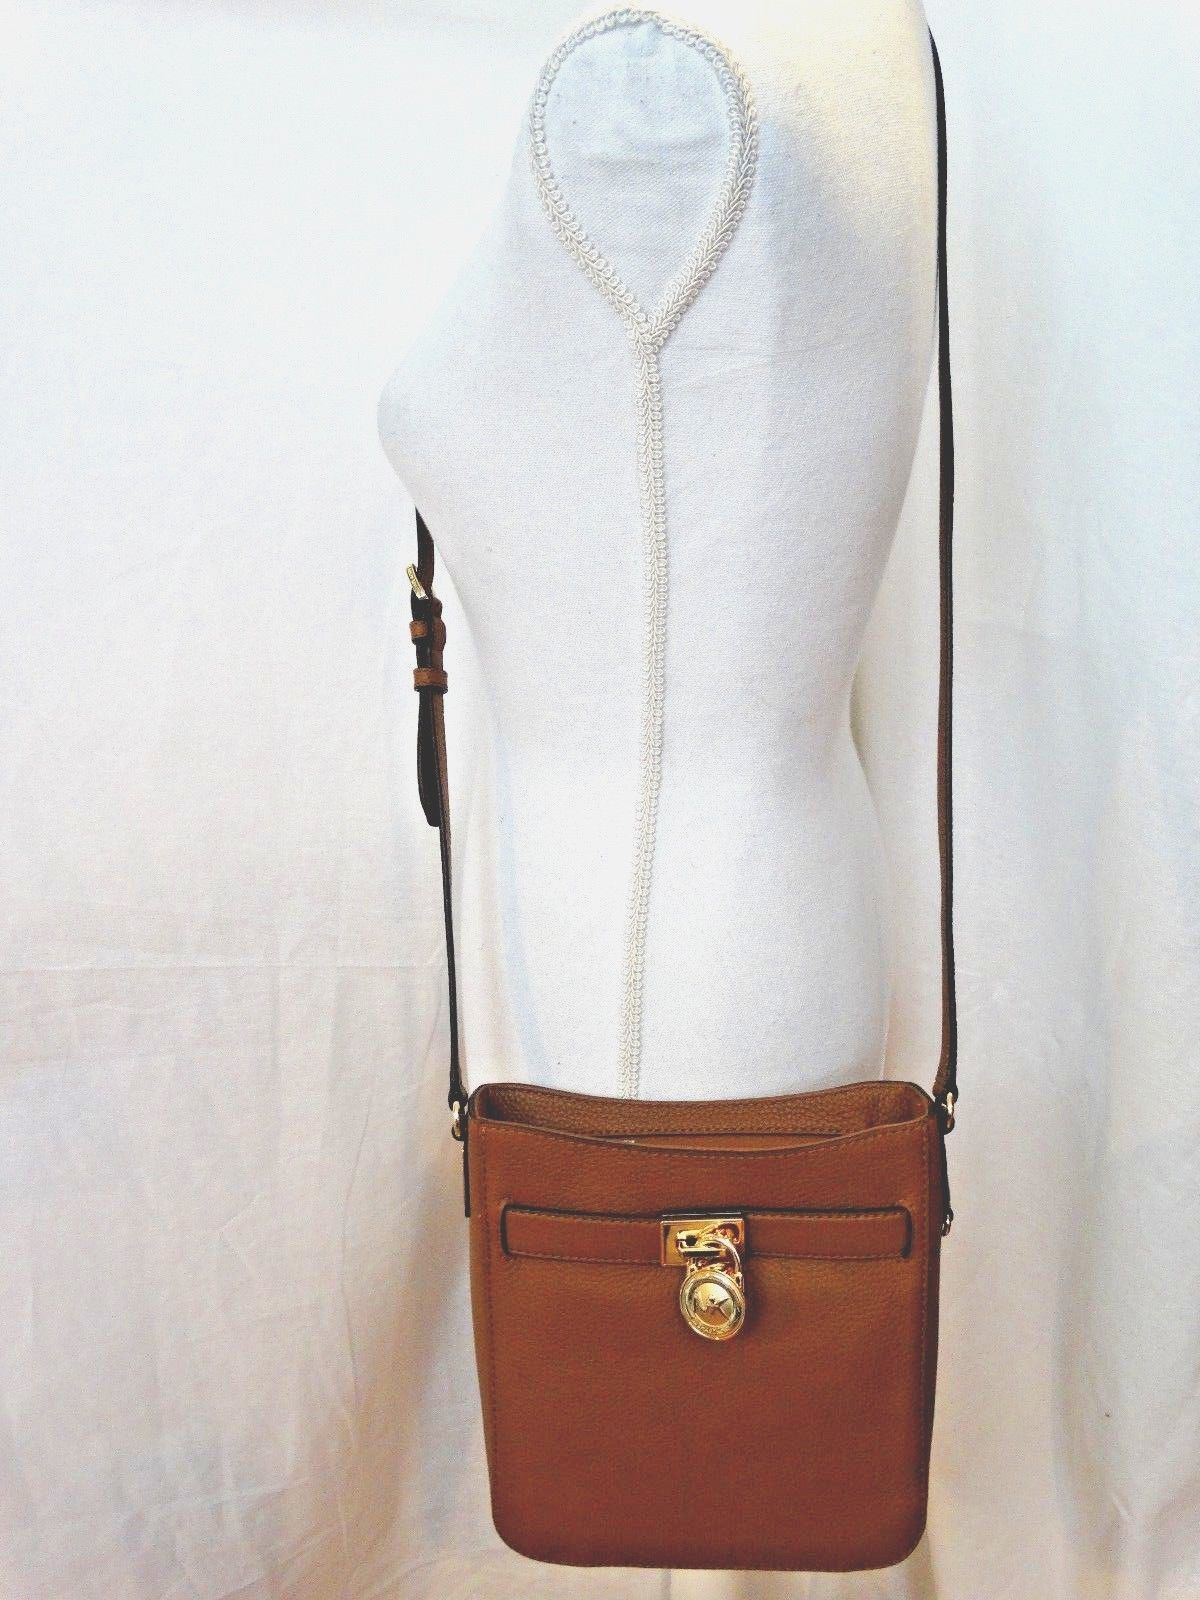 213f989a1fad 57. 57. Previous. Michael Kors Hamilton Traveler Messenger Luggage Leather Crossbody  Bag New